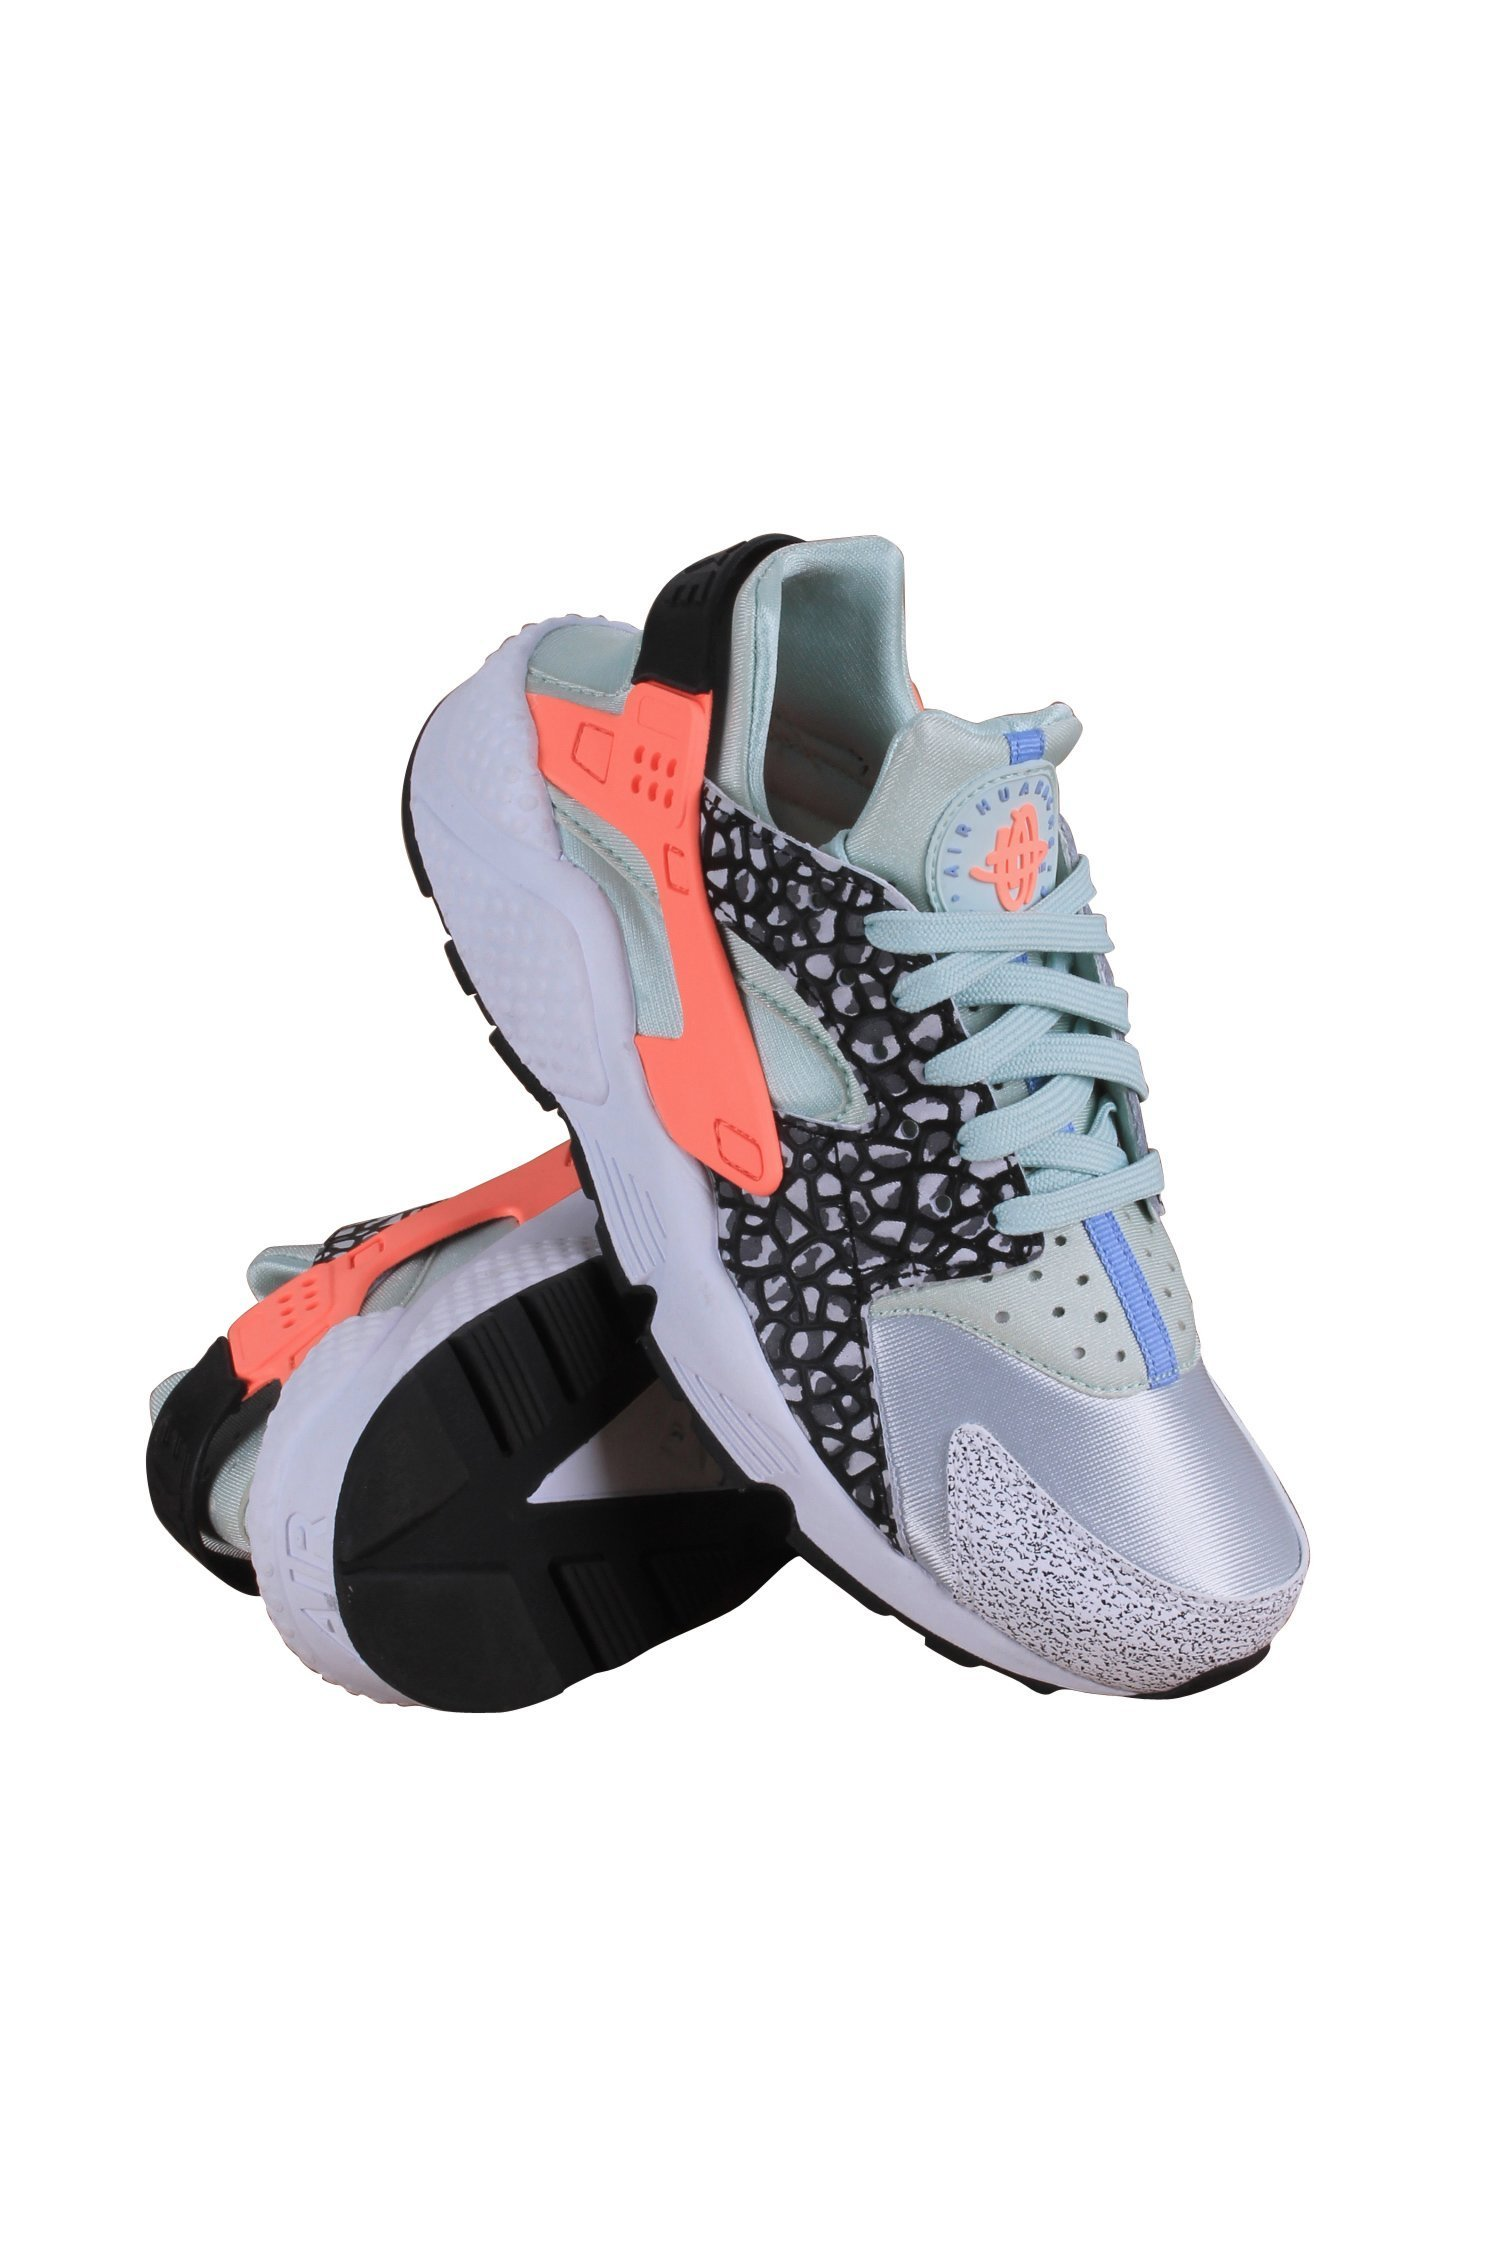 b410d58c49e7 Galleon - Nike Womens Air Huarache Run PRM Trainers 683818 Sneakers ...